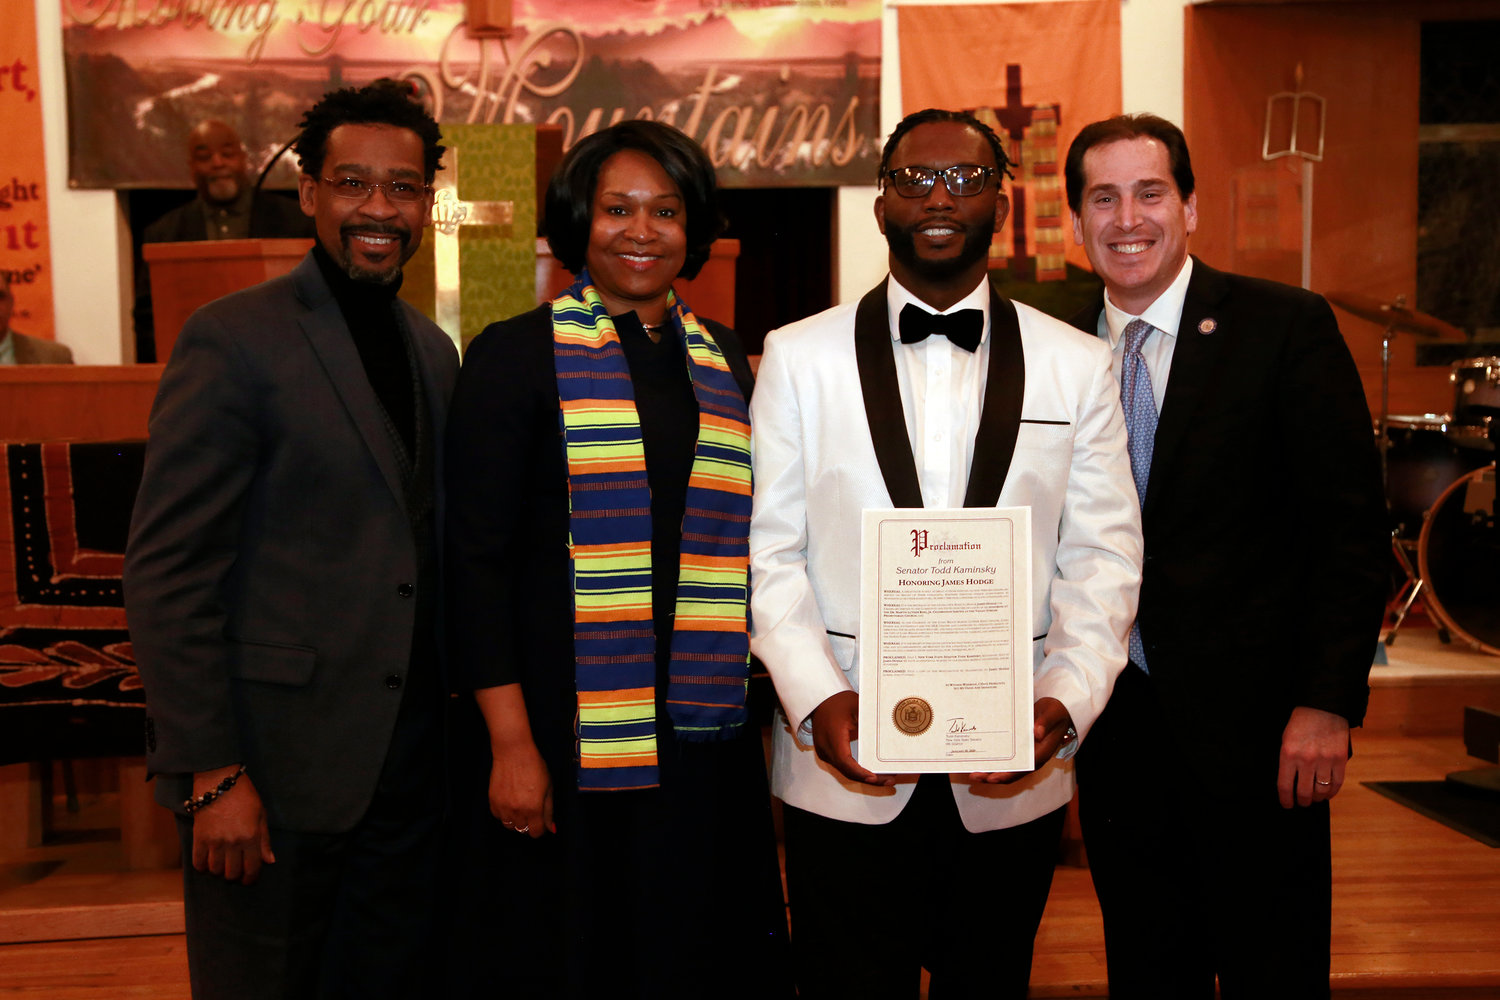 The Rev. Tyrone Cook of the Powerhouse COGIC in Merrick, from left, Clemons-Jones, Honoree James Hodge of the Long Beach MLK Center and State Sen. Todd Kaminsky.